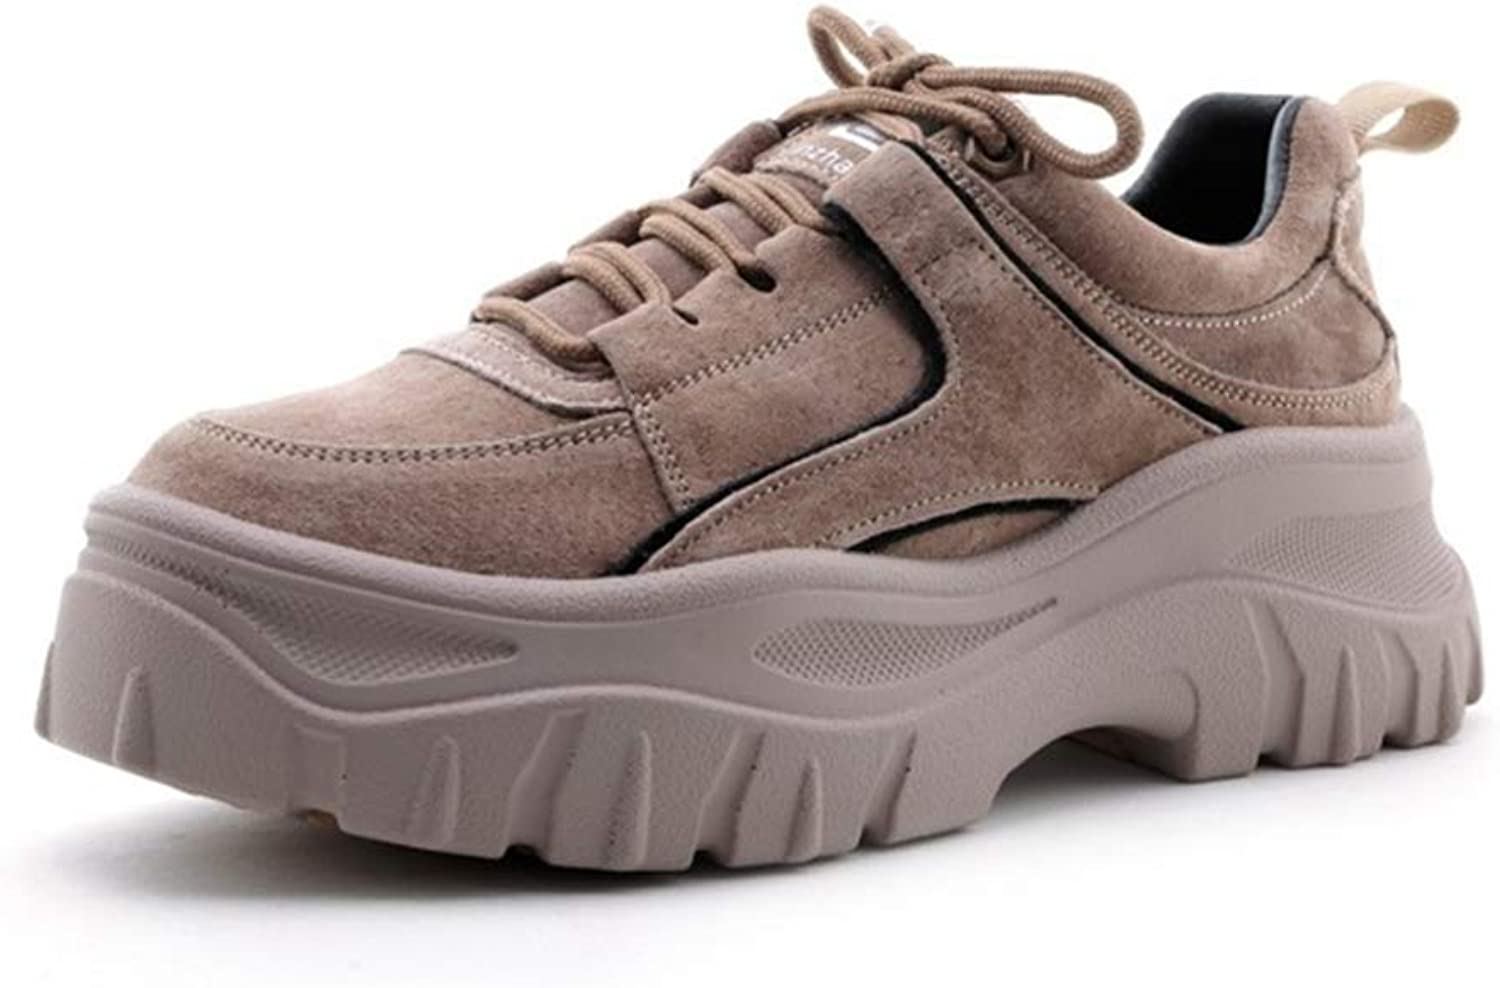 Women's Sneakers Suede Platform shoes Sports shoes Low-Top Casual shoes Athletic shoes Training shoes Outdoor Hiking shoes,B,35